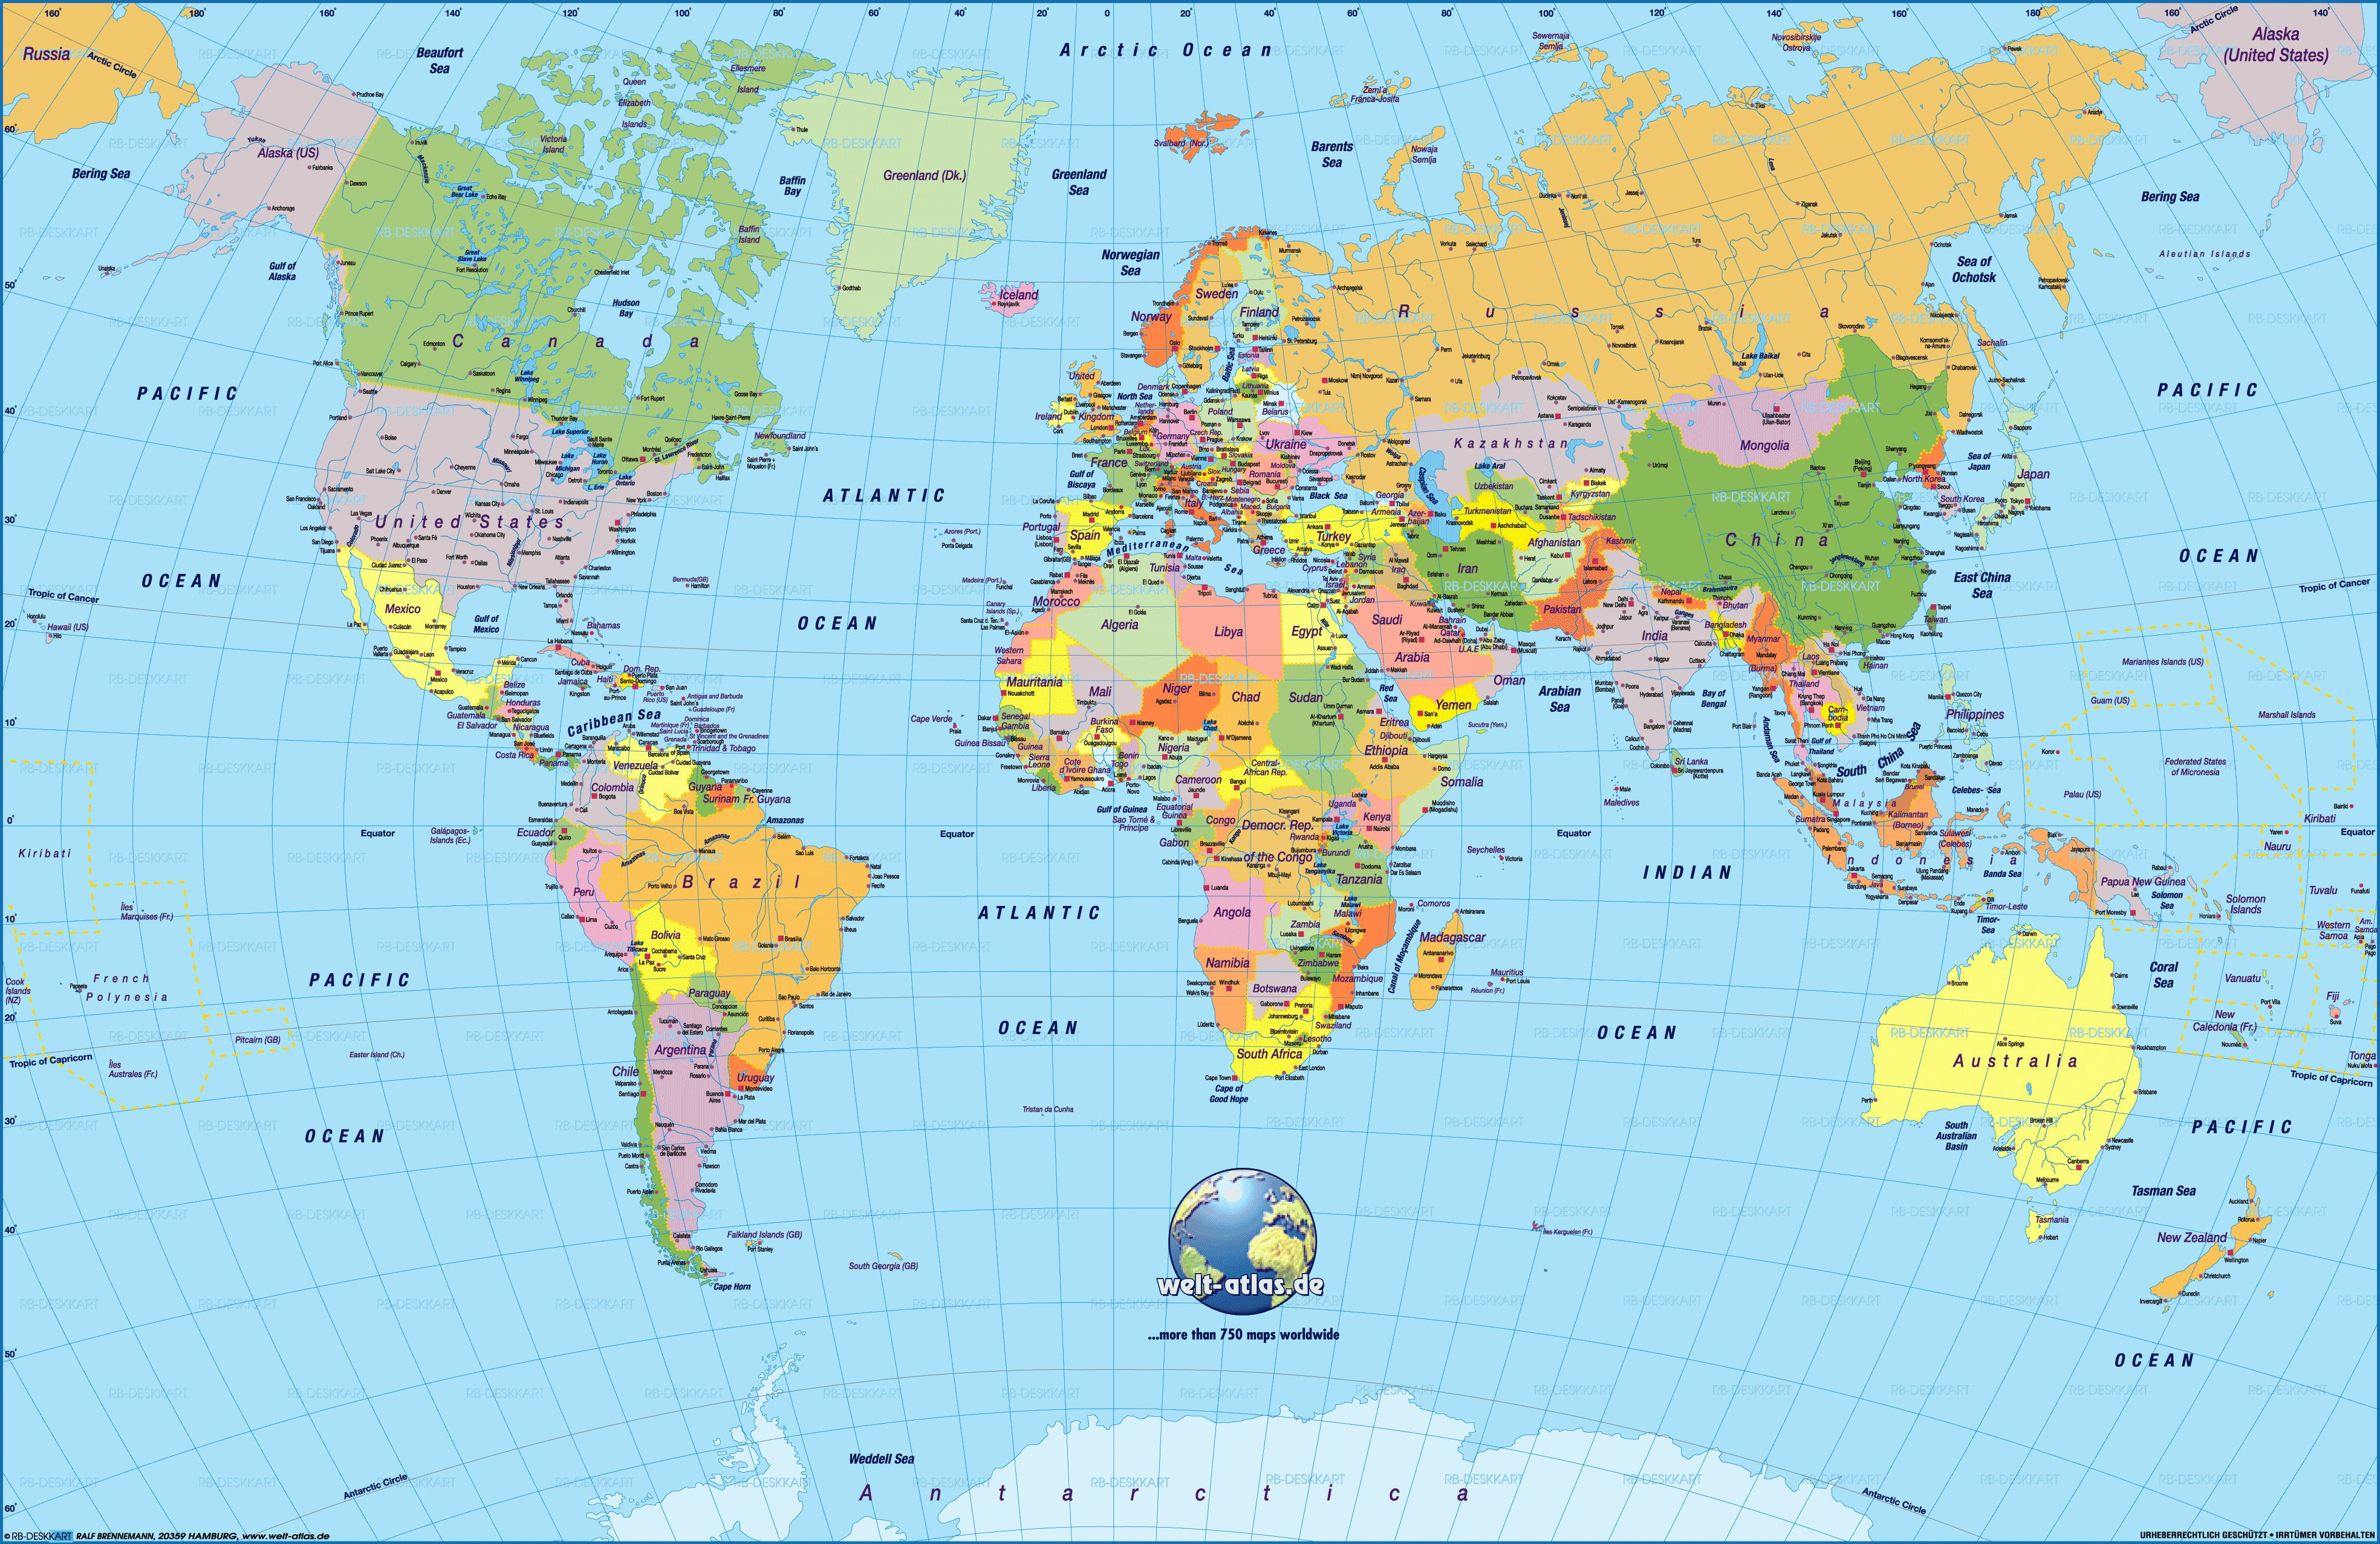 Cool World Map Pdf 2 | Maps | World Map Wallpaper, Free Printable - Free Printable World Map Pdf